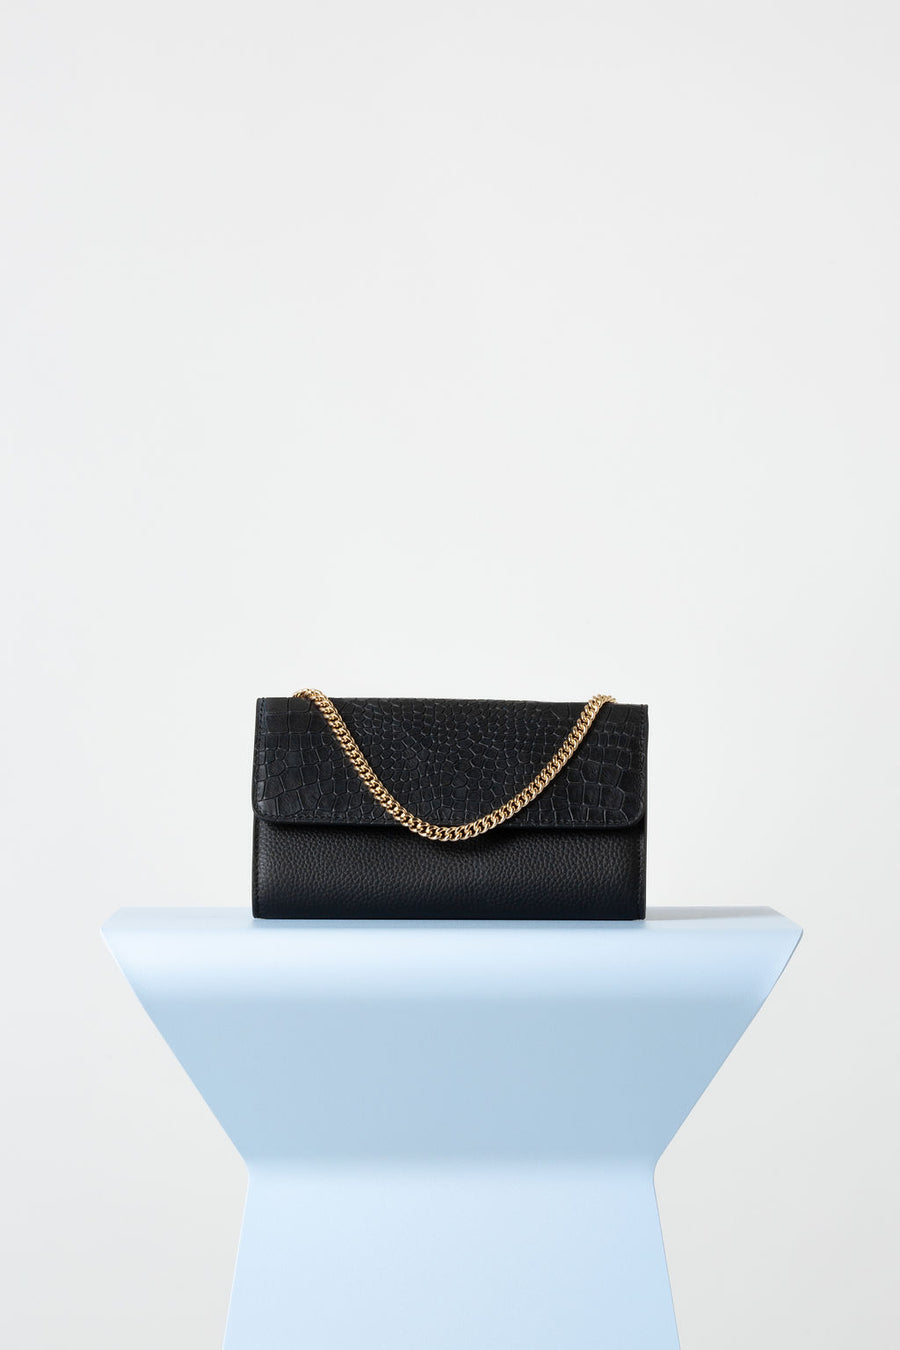 Vash - Frankie Evening Bag in Black Croc